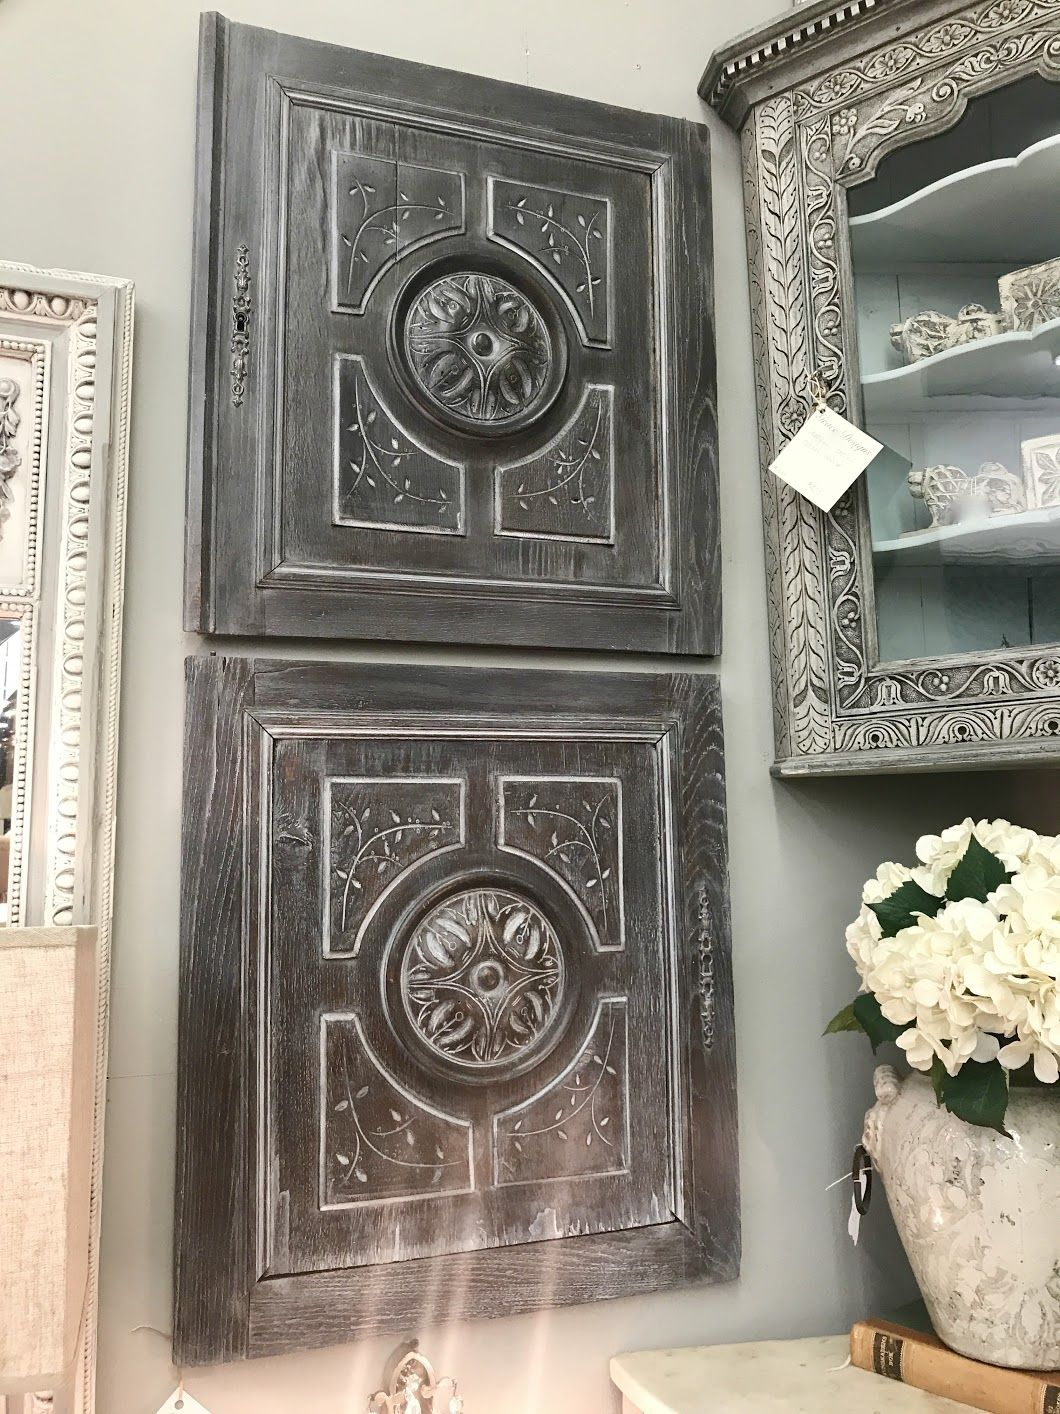 Carved Cabinet Doors With Original Hardware Set Of Two 22 5 Wide X 25 5 High 395 Grace Designs At Forestwood Antique Mall Antiques Vintage Furniture